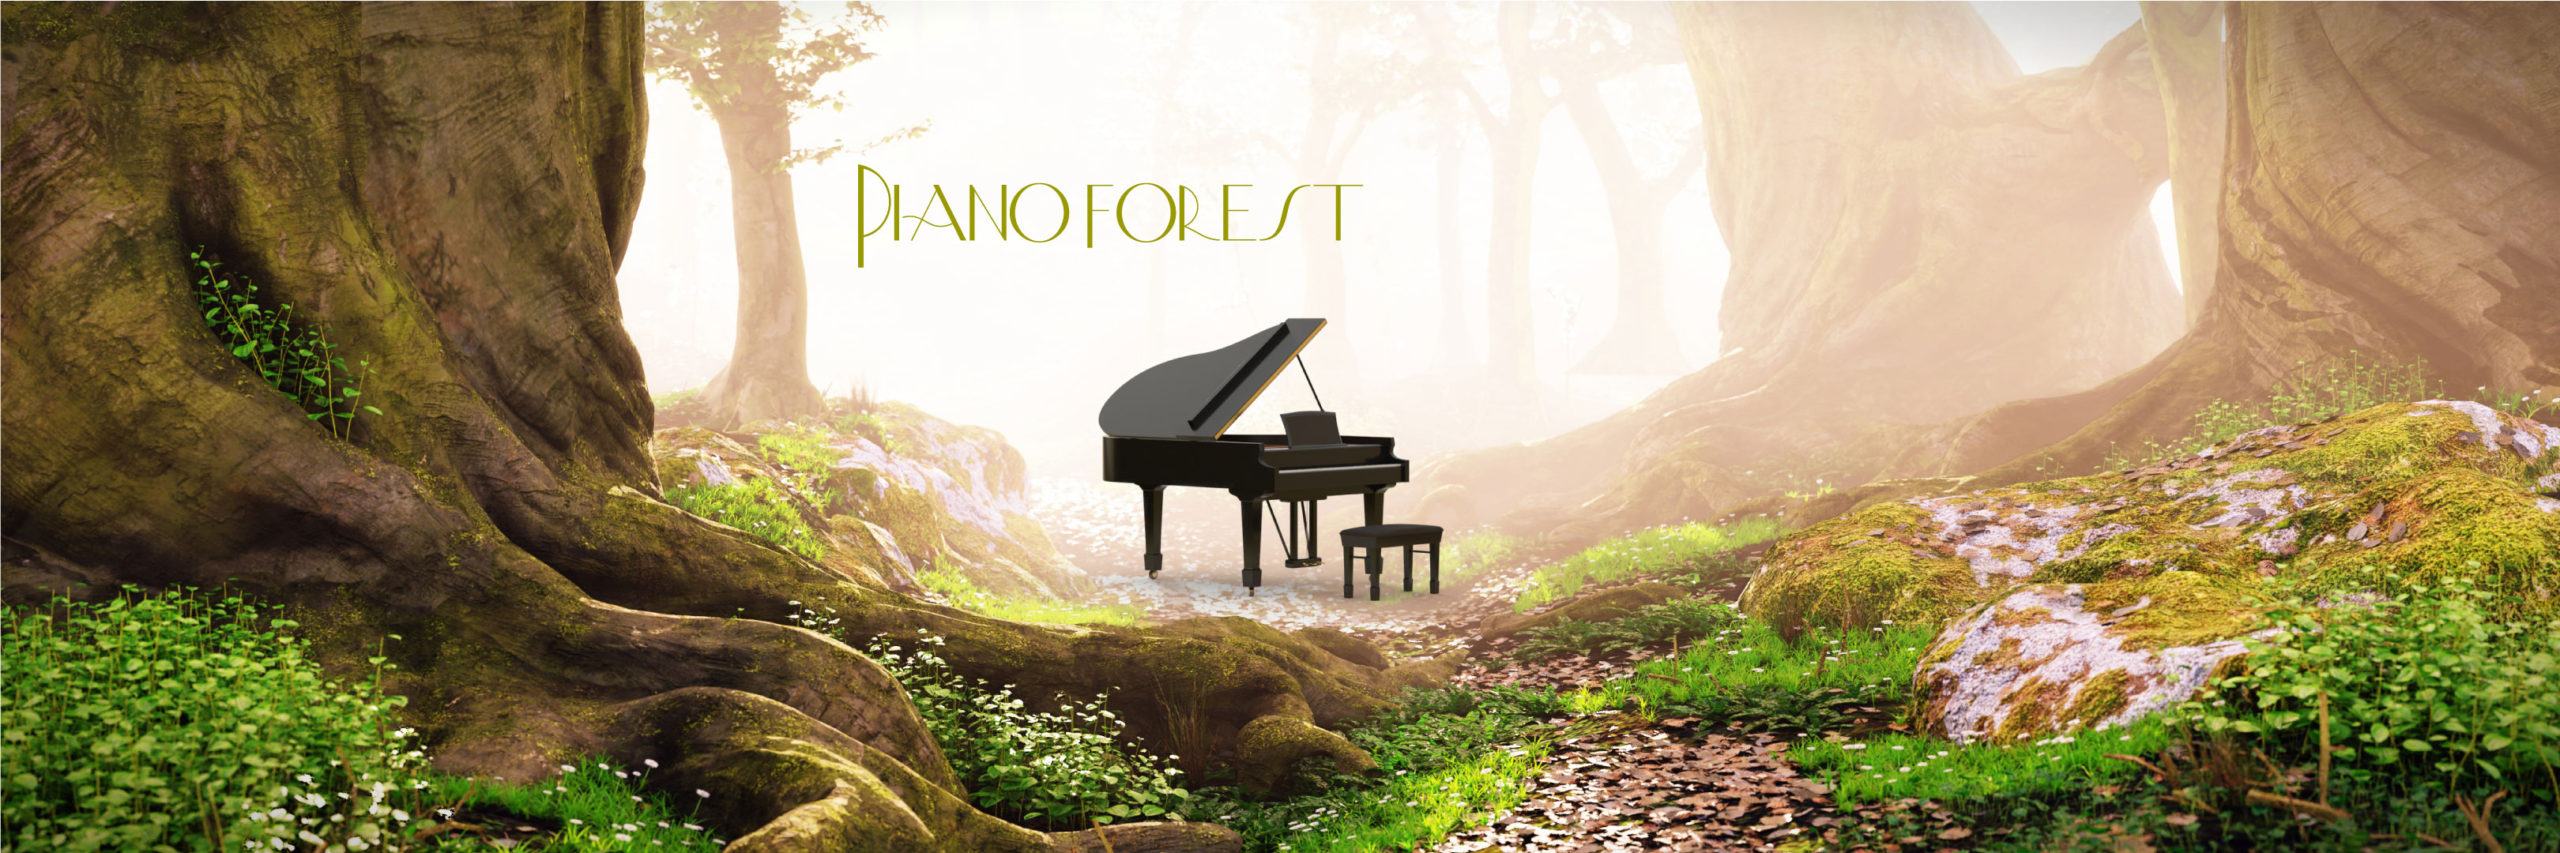 Pianoforest-front-L